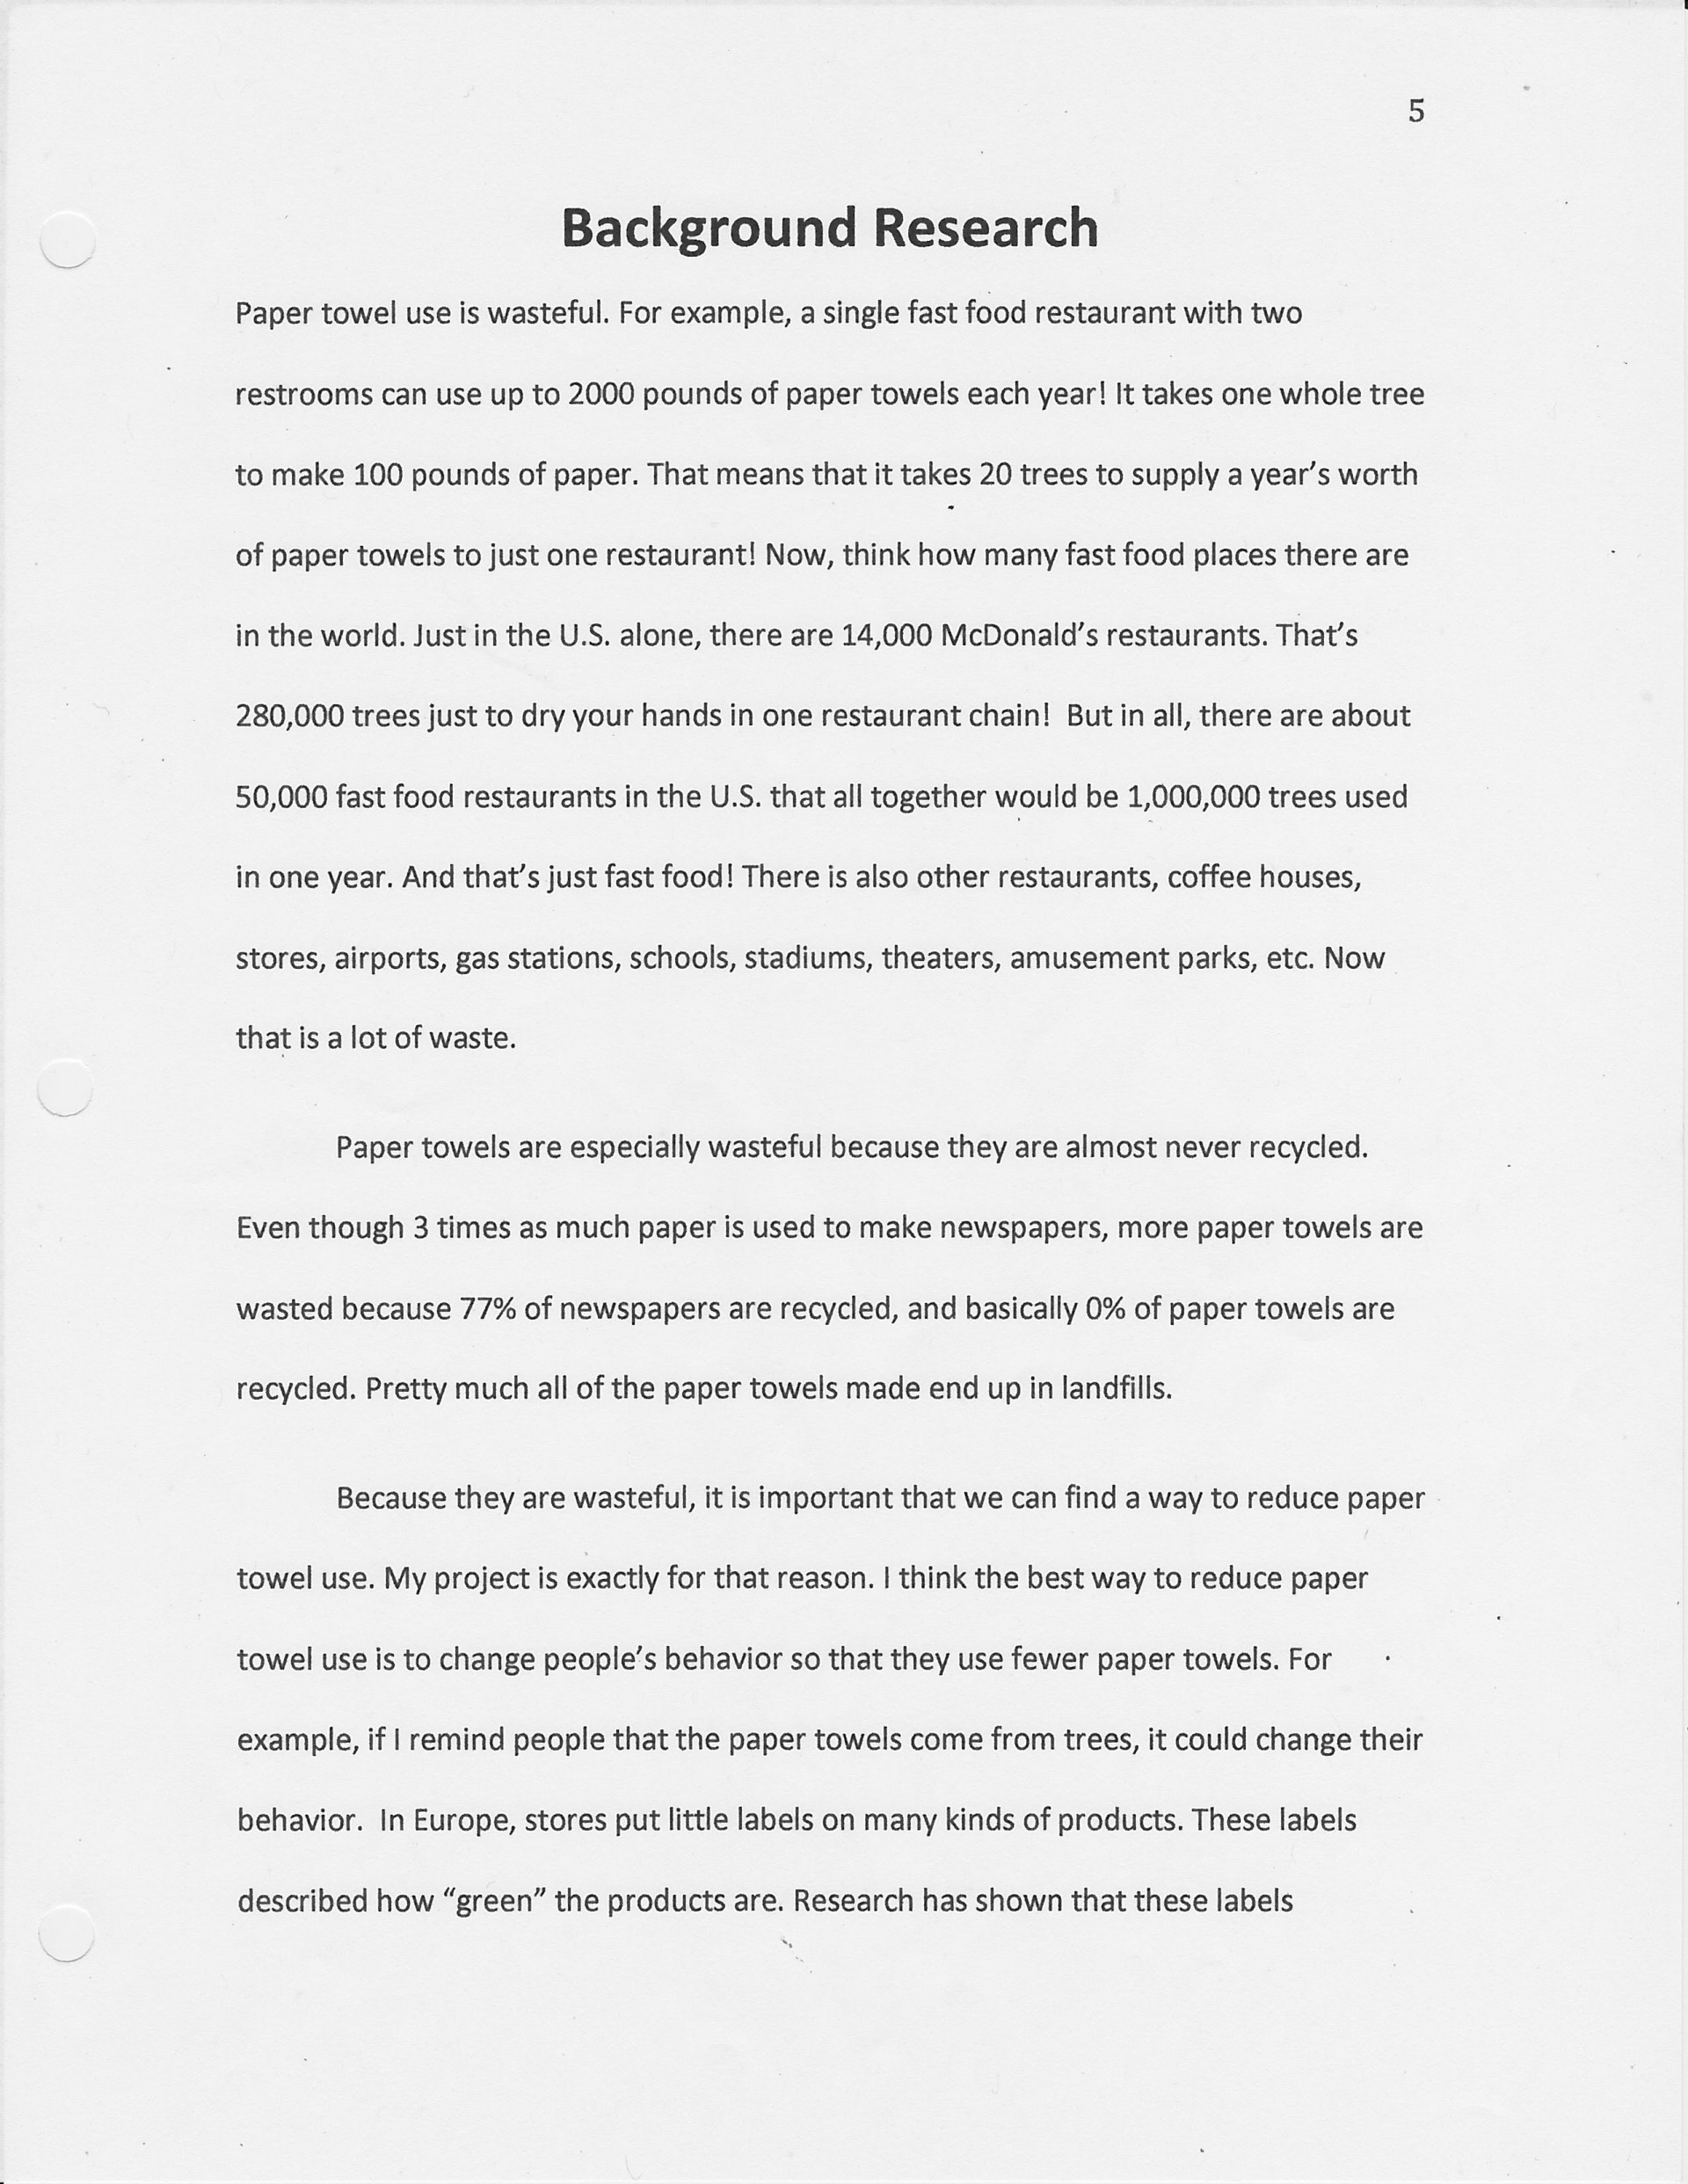 008 Research Paper Scn 0005heightu003d320u0026widthu003d247 Background Science Fair Breathtaking Example For How To Write A 1920